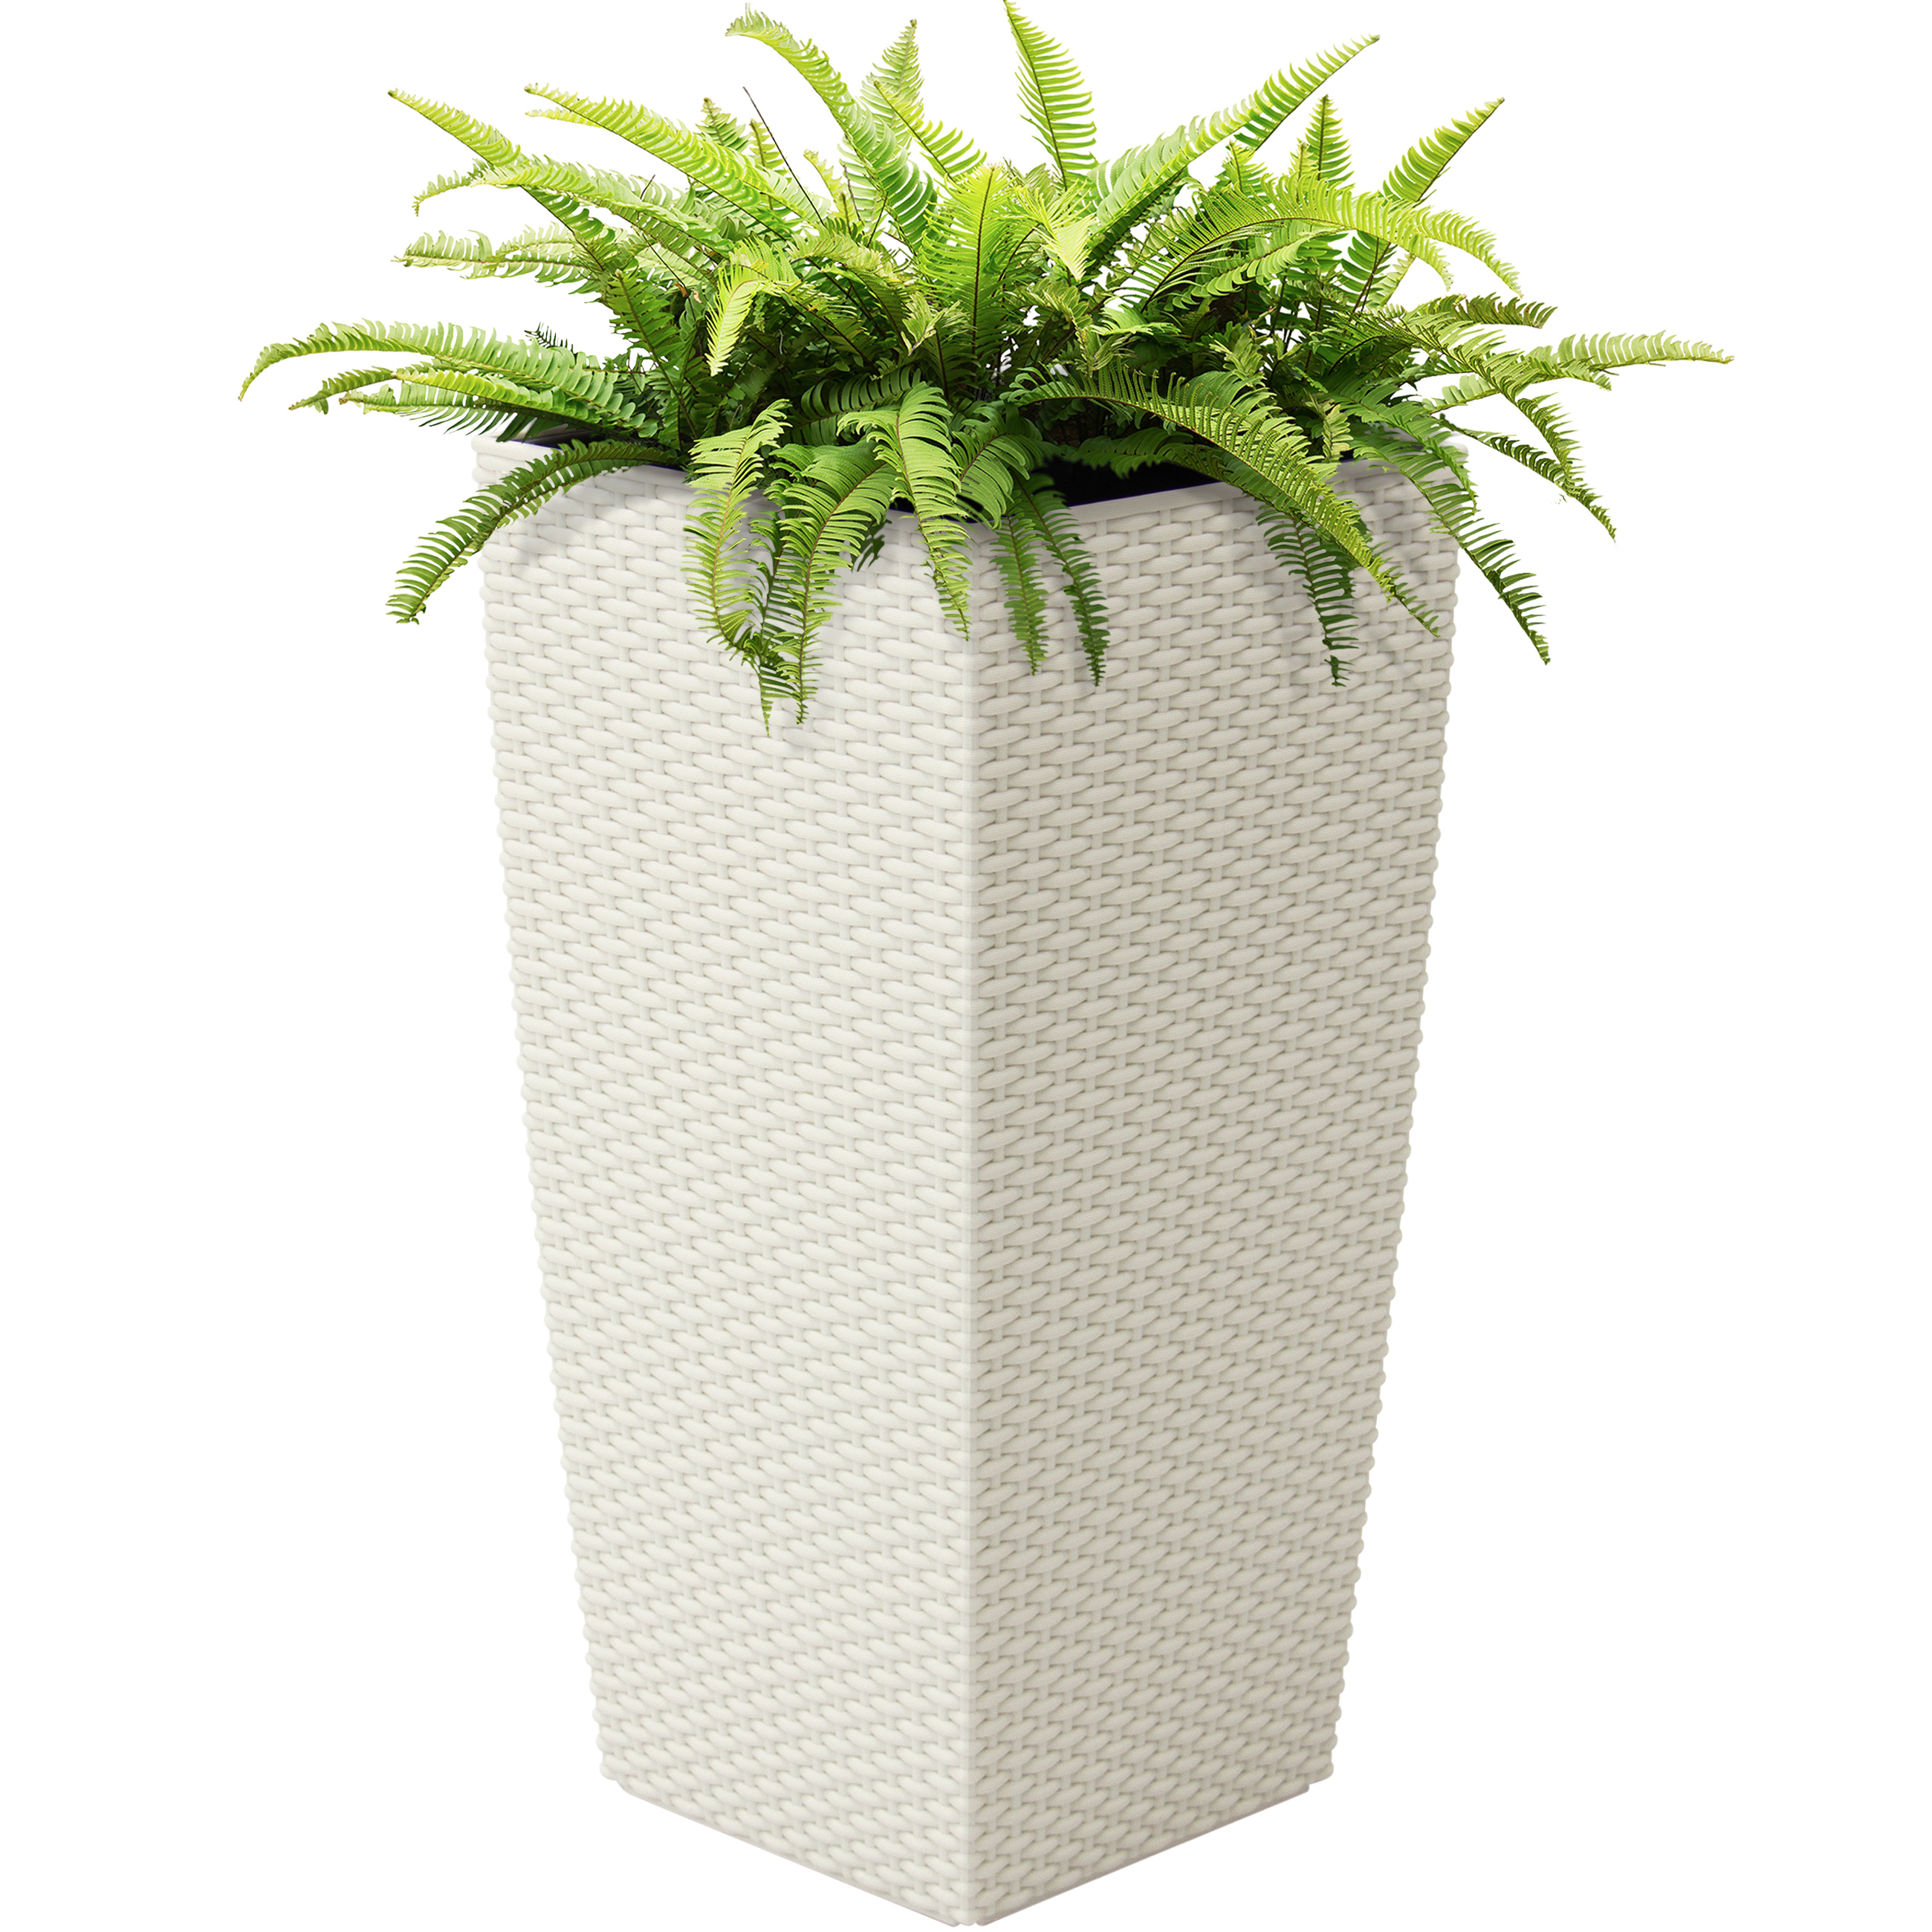 Best Choice Products Self Watering Wicker Planter w/ Water Level Indicator, Rolling Wheels for Indoor, Outdoor - White